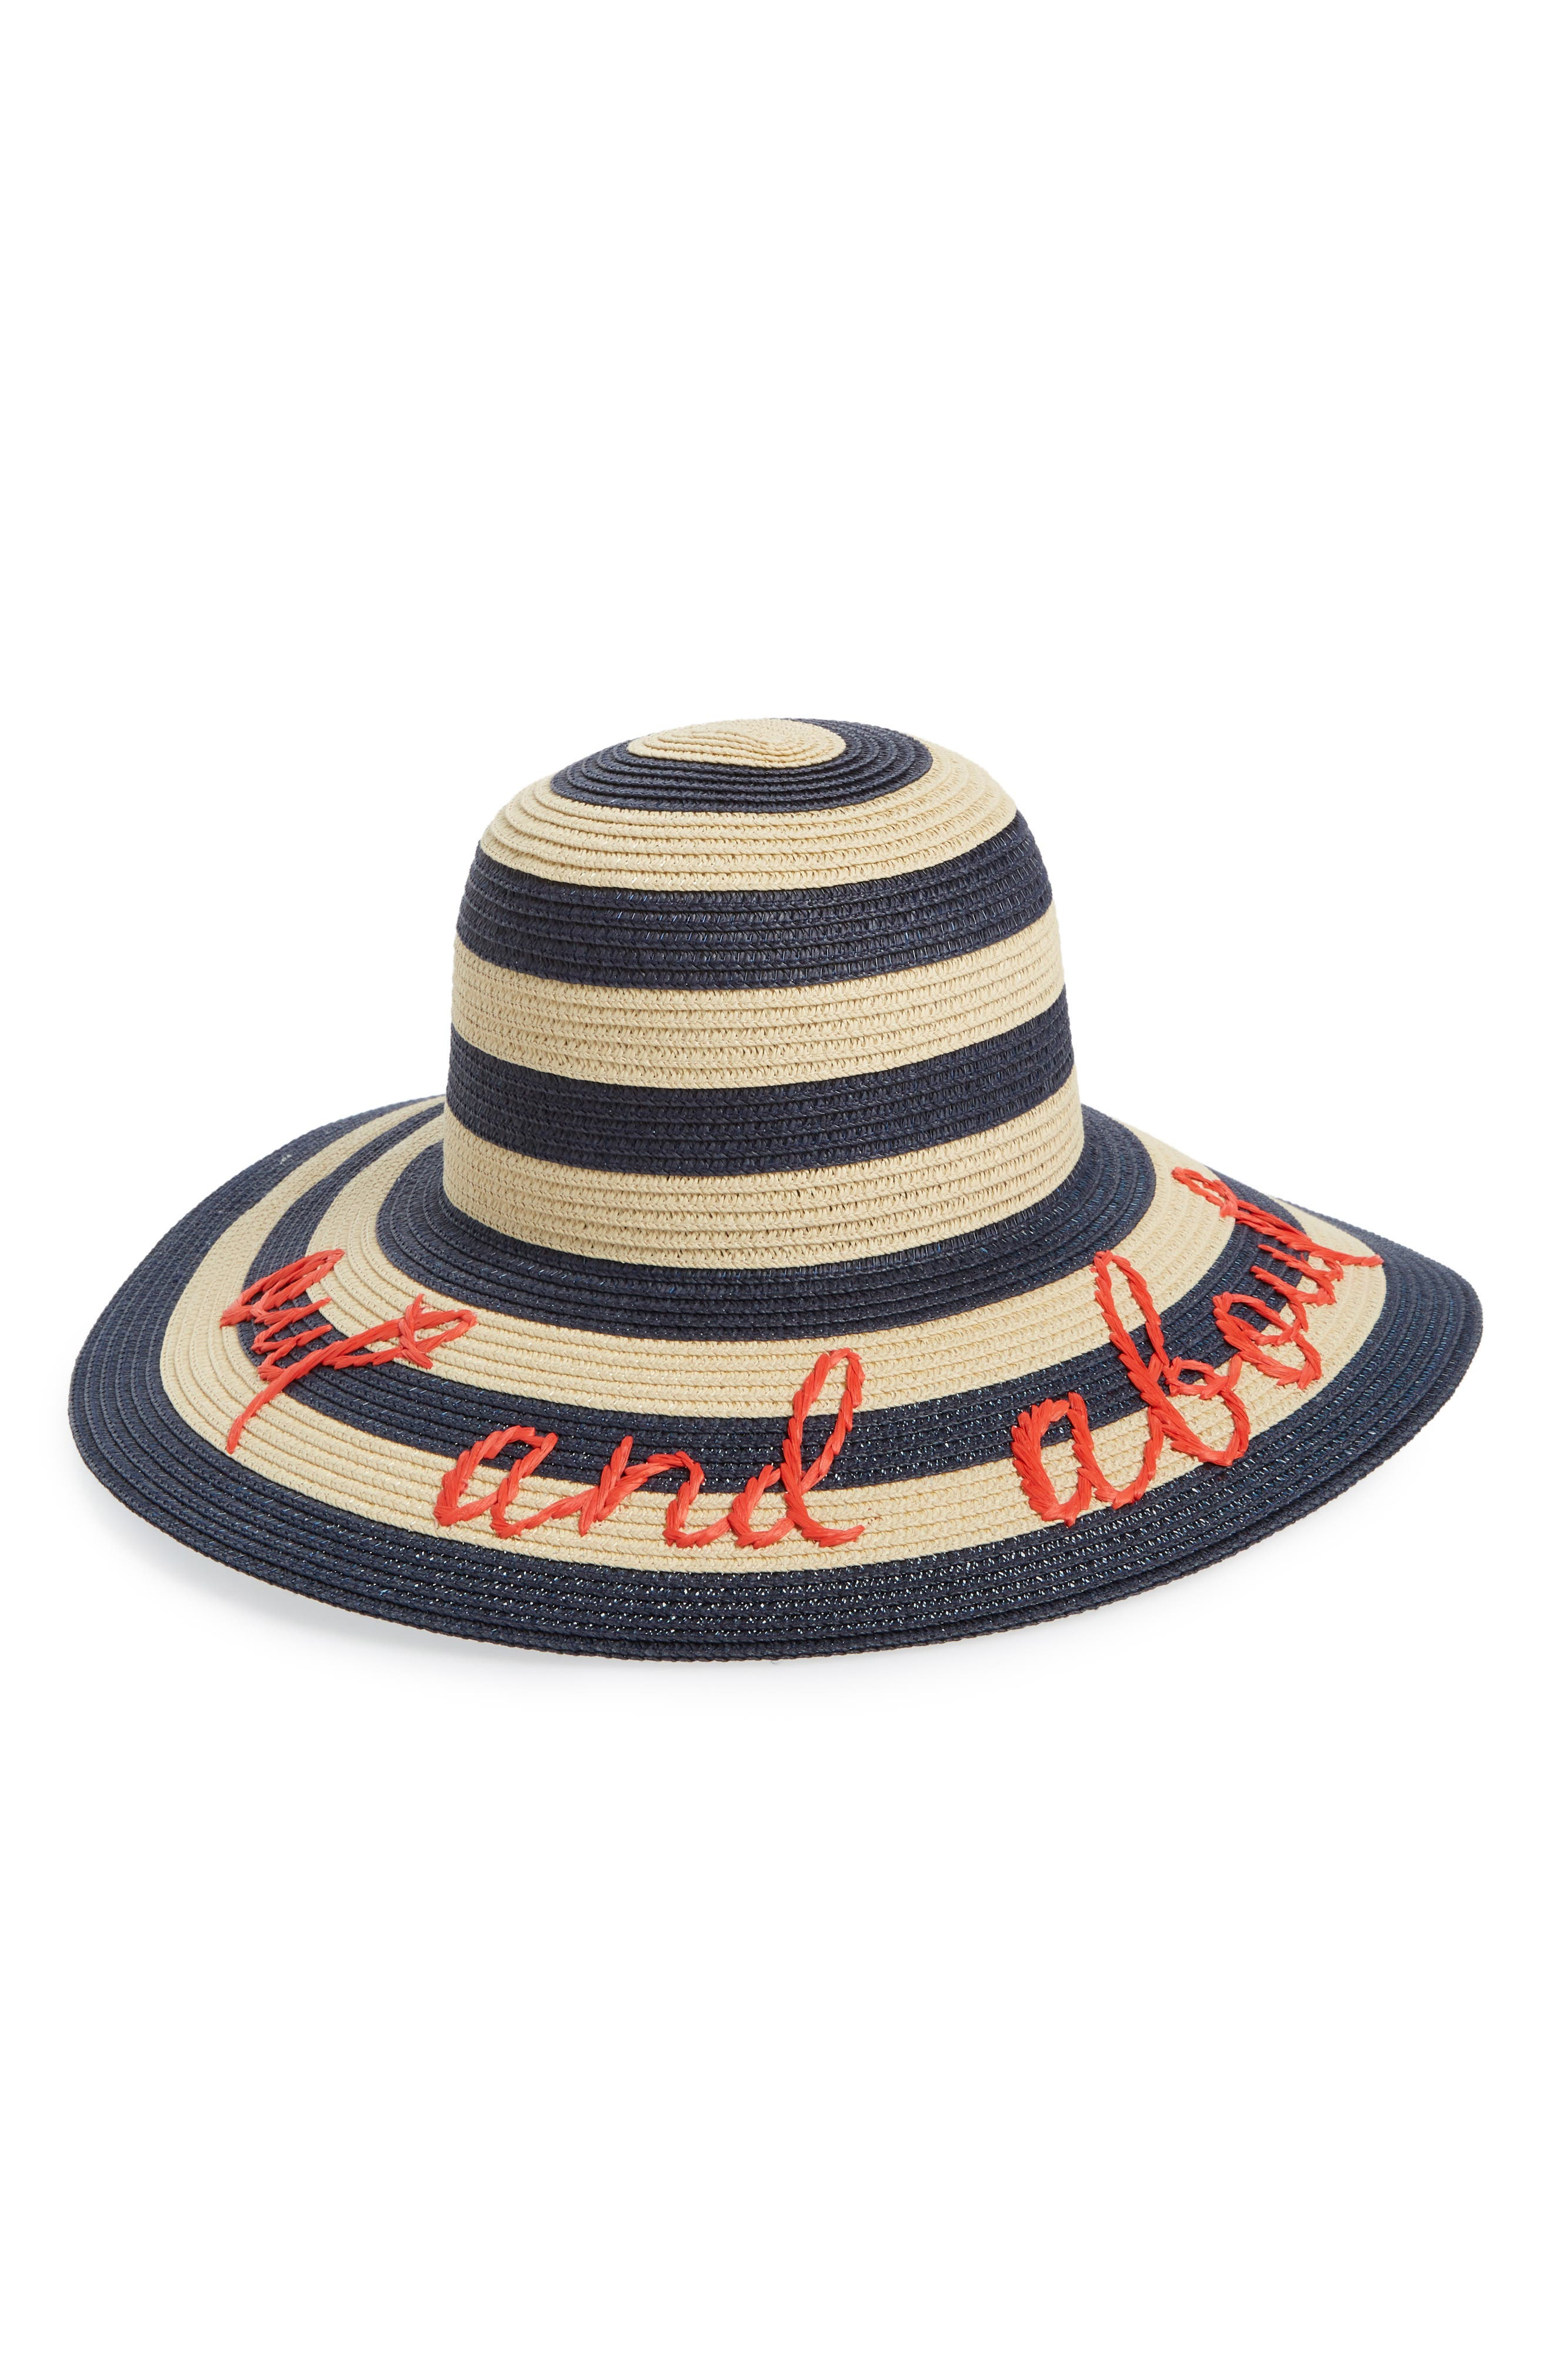 kate spade out and about straw hat,                             Main thumbnail 1, color,                             Rich Navy/ Natural/ Black